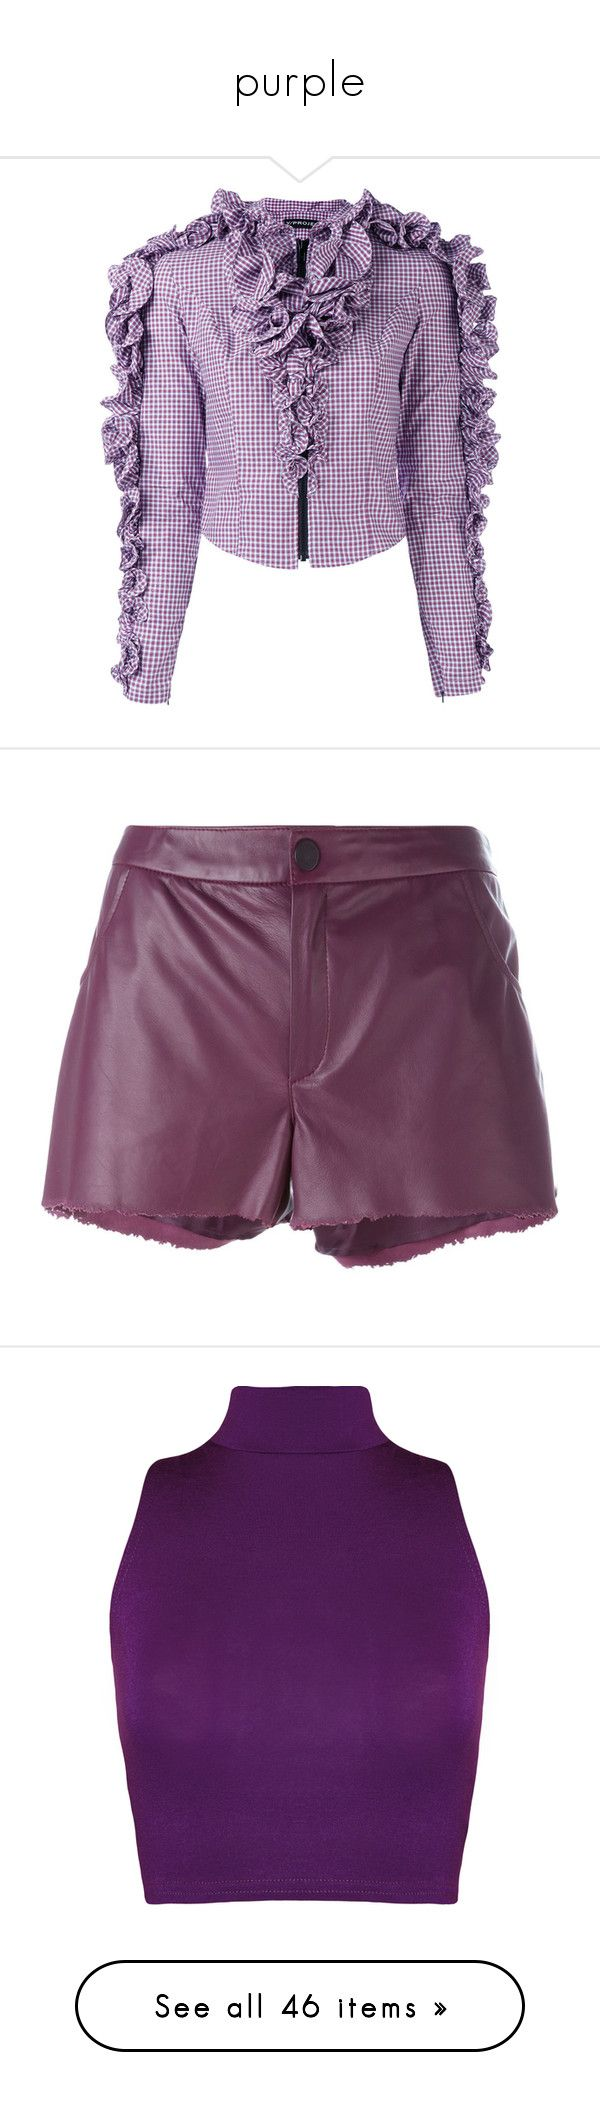 """""""purple"""" by nyraul ❤ liked on Polyvore featuring tops, blouses, purple crop top, flounce blouse, cotton blouse, cotton crop top, flounce top, shorts, purple shorts and drome"""